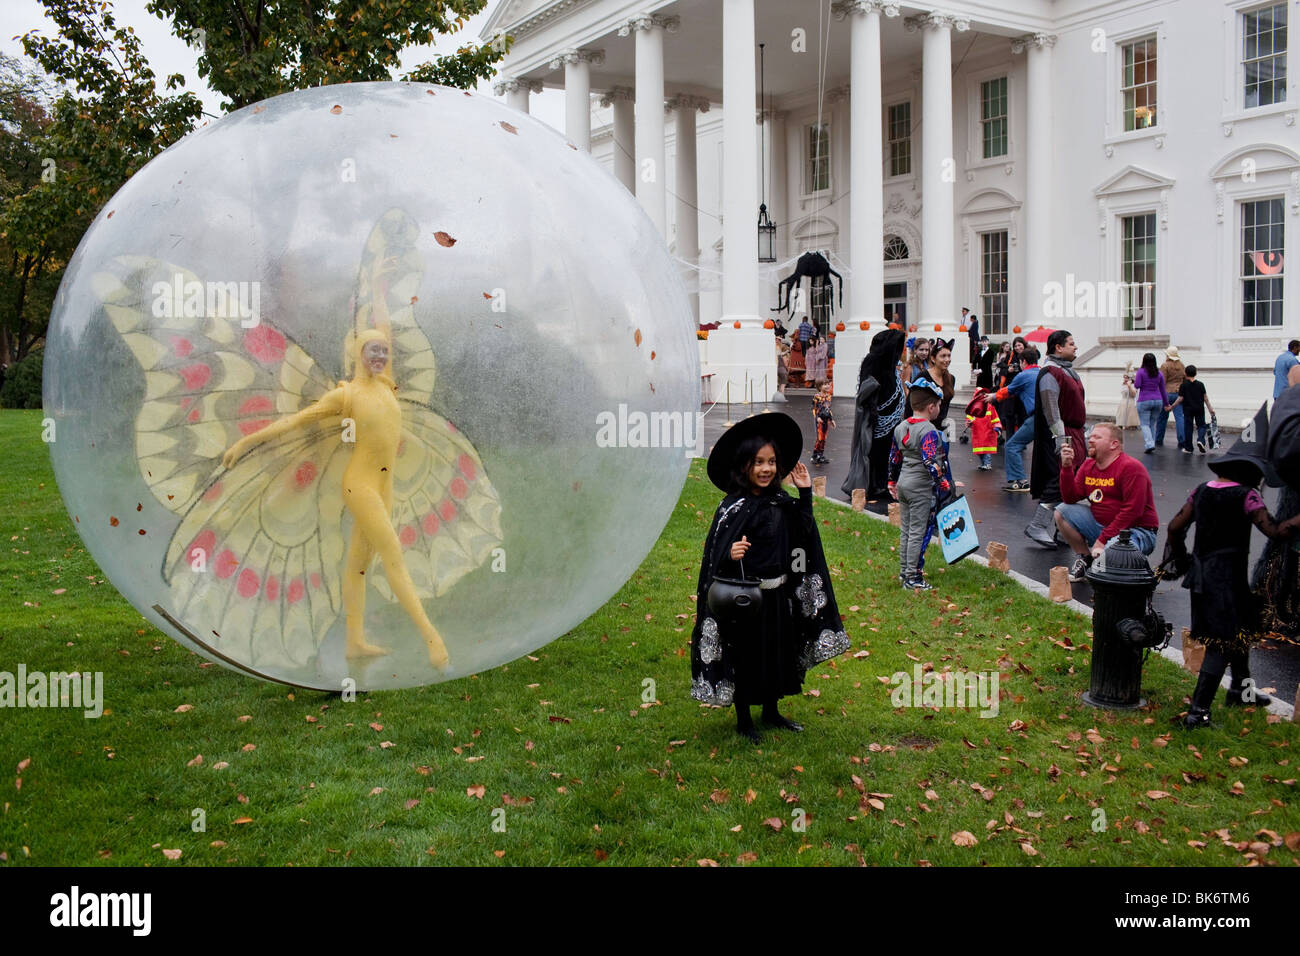 School children participate in Halloween festivities at the North Portico of the White House - Stock Image